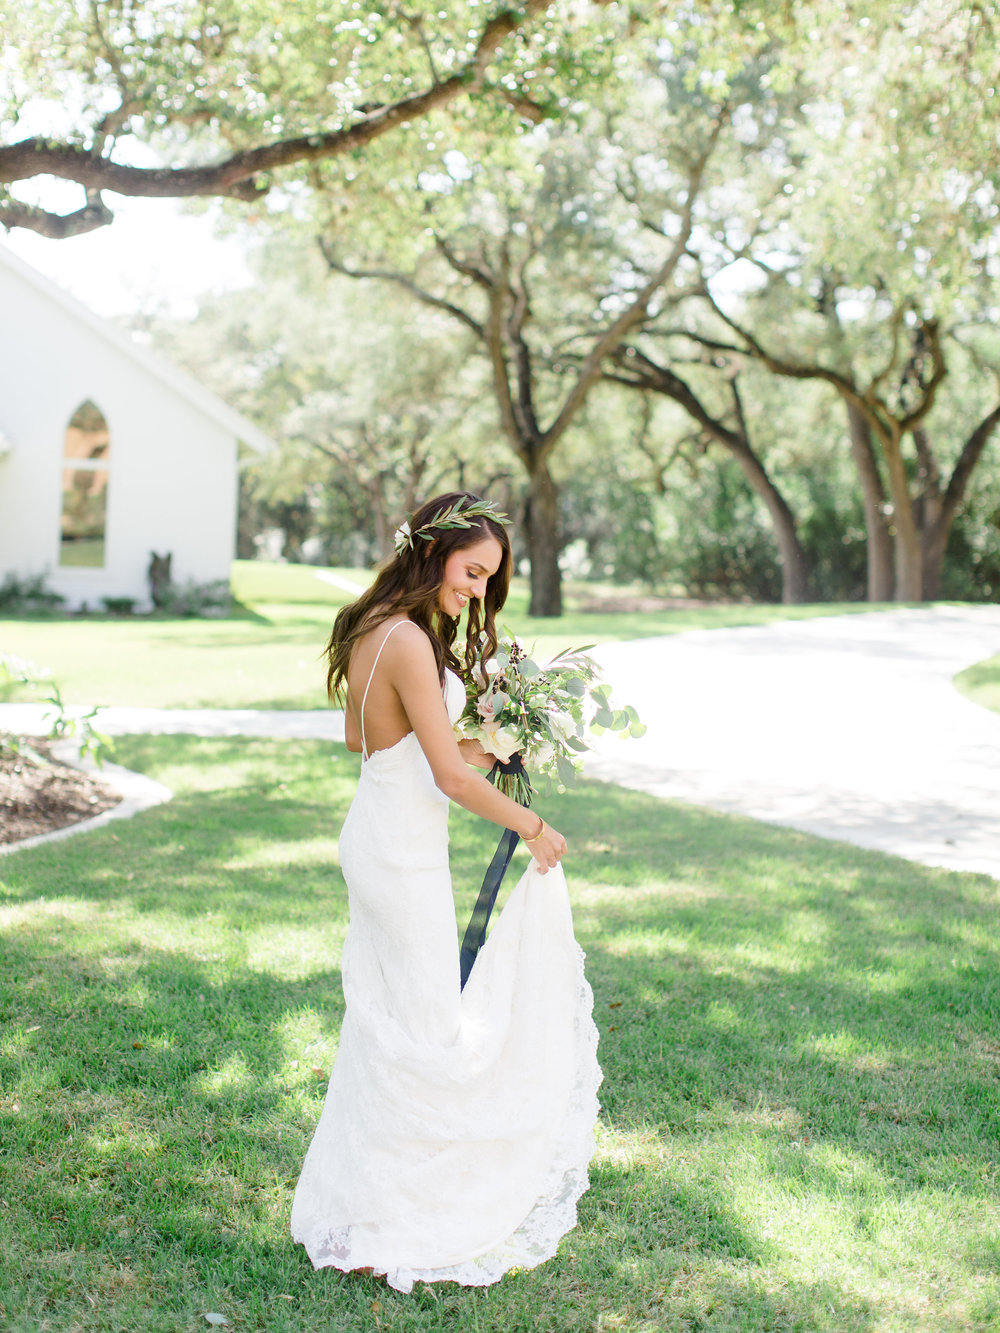 Chandelier_of_Gruene_Wedding_Summer_Barrett-159.jpg